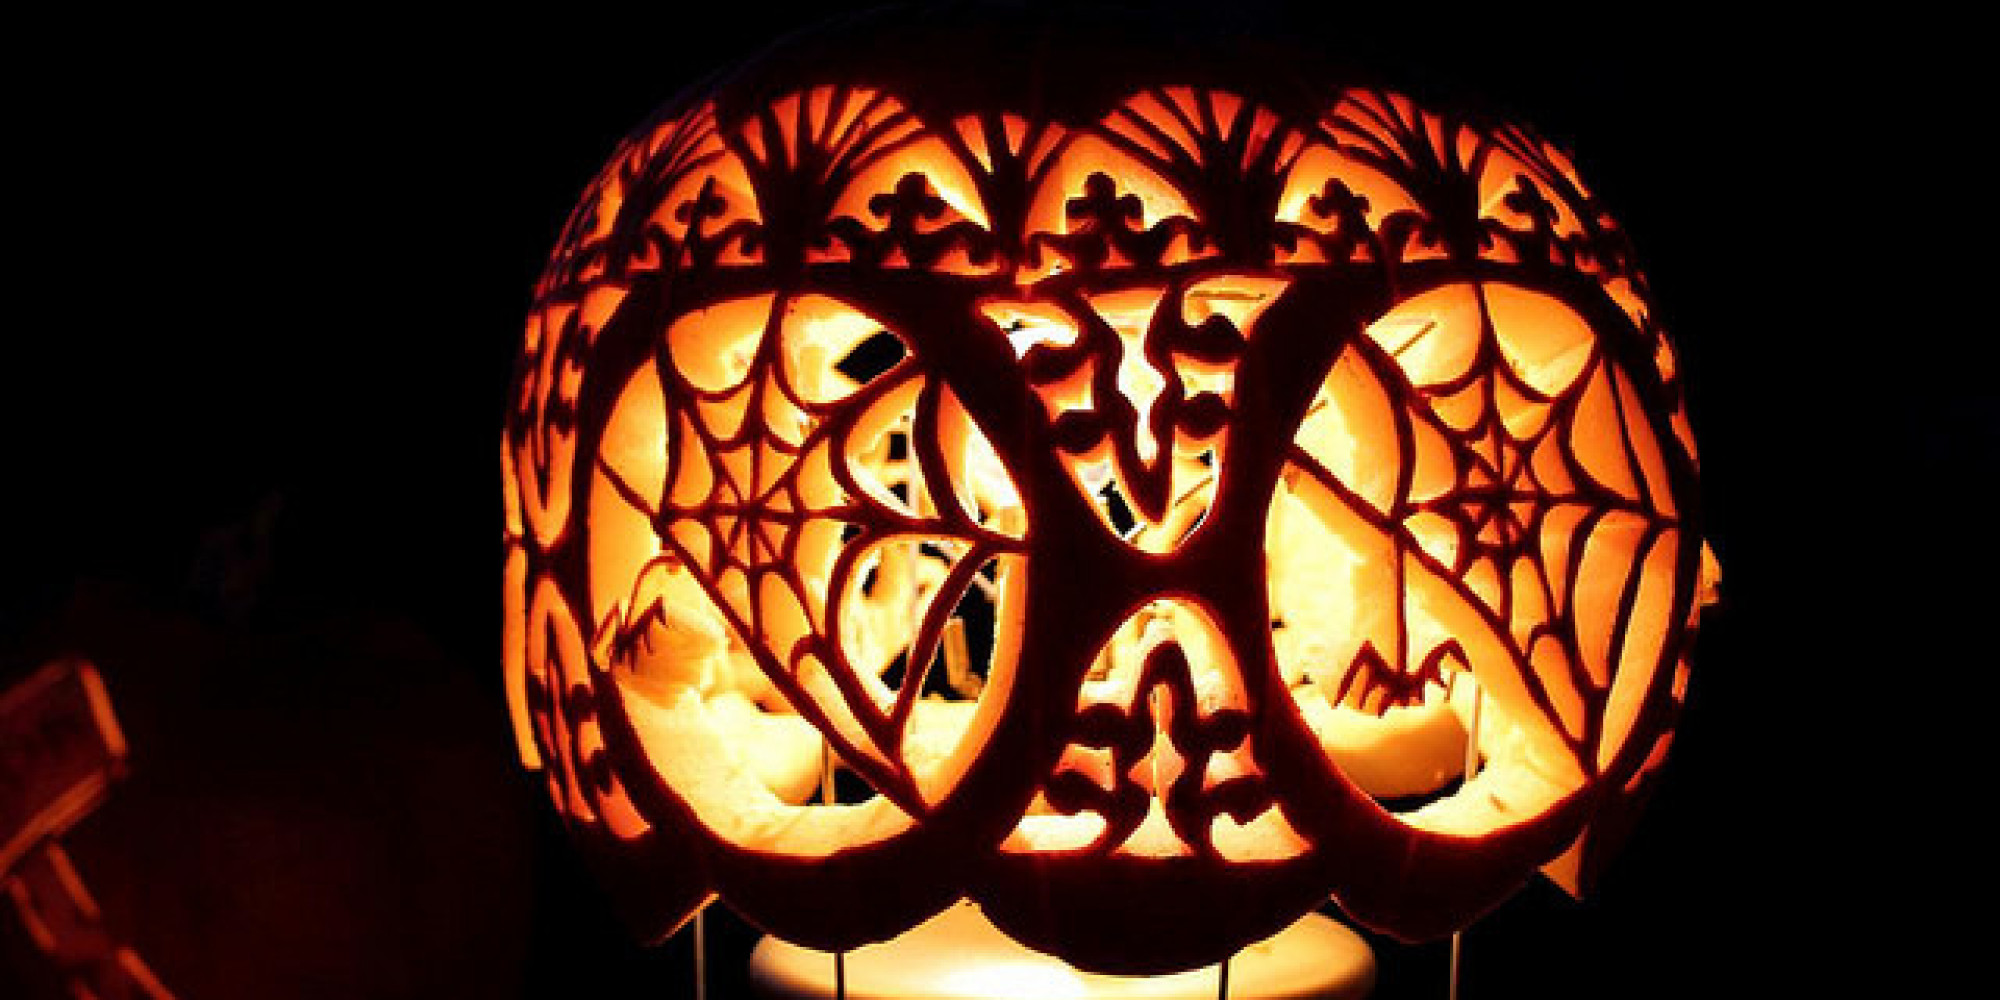 Pumpkin Carving 31 Pumpkin Carving Ideas For Overly Ambitious People Photos